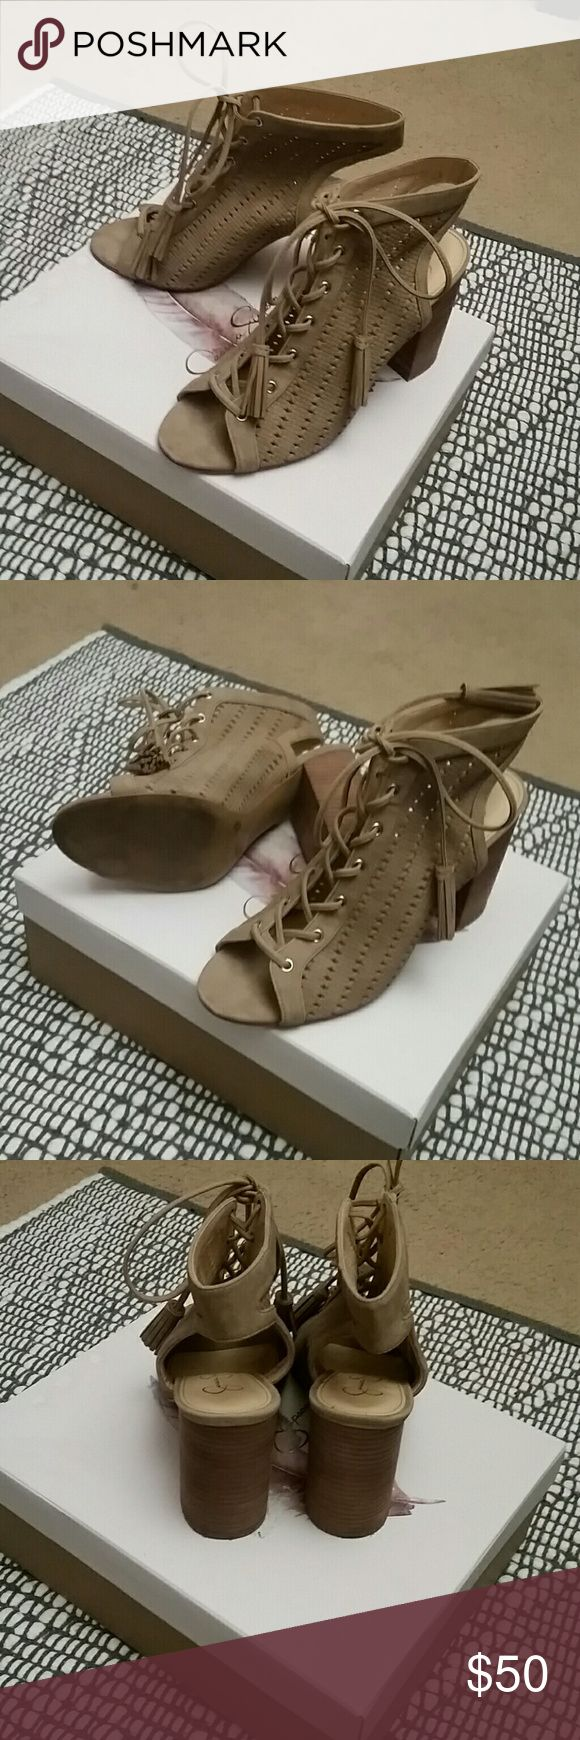 Jessica Simpson wedge shoes with tassel ties Cute with shorts,skinny jeans etc.The box says cashmere but also I'd say beige in color.Only wore a few times. Jessica Simpson Shoes Sandals